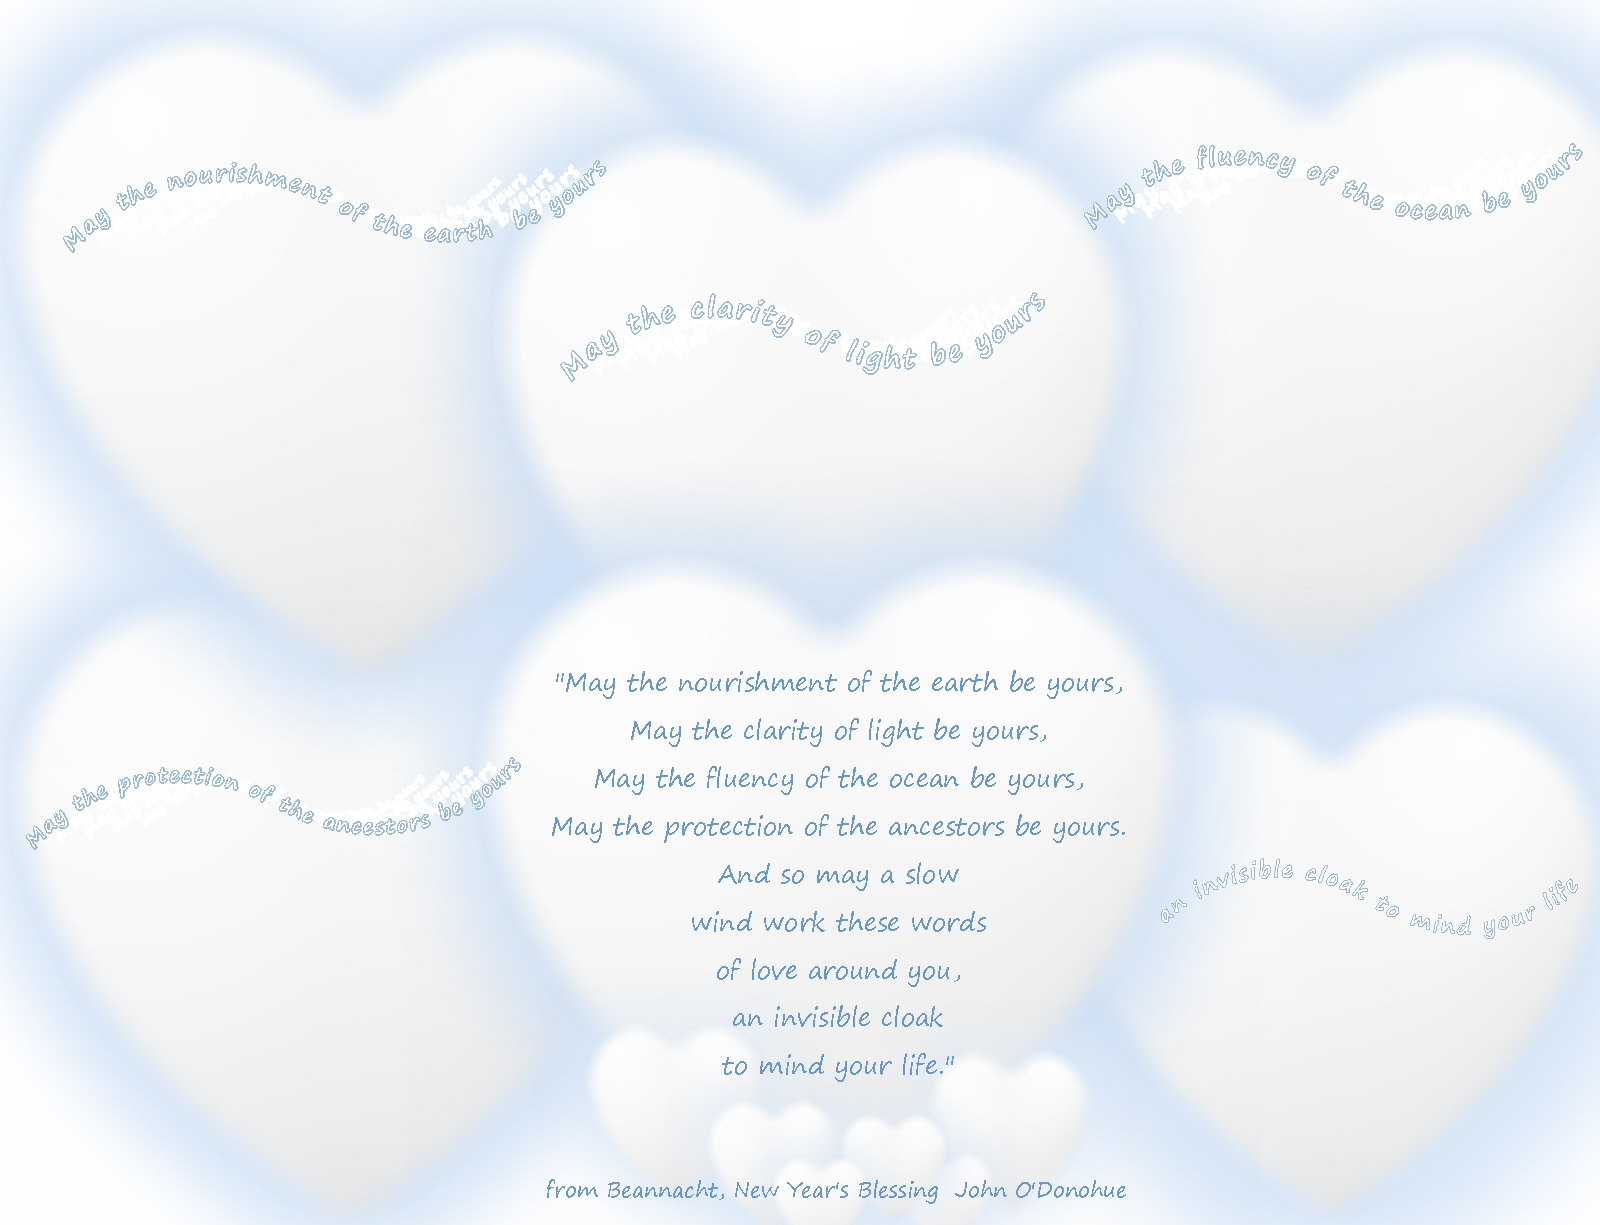 A New Year\'s Wish for all… nourishment, clarity, fluency, protection ...